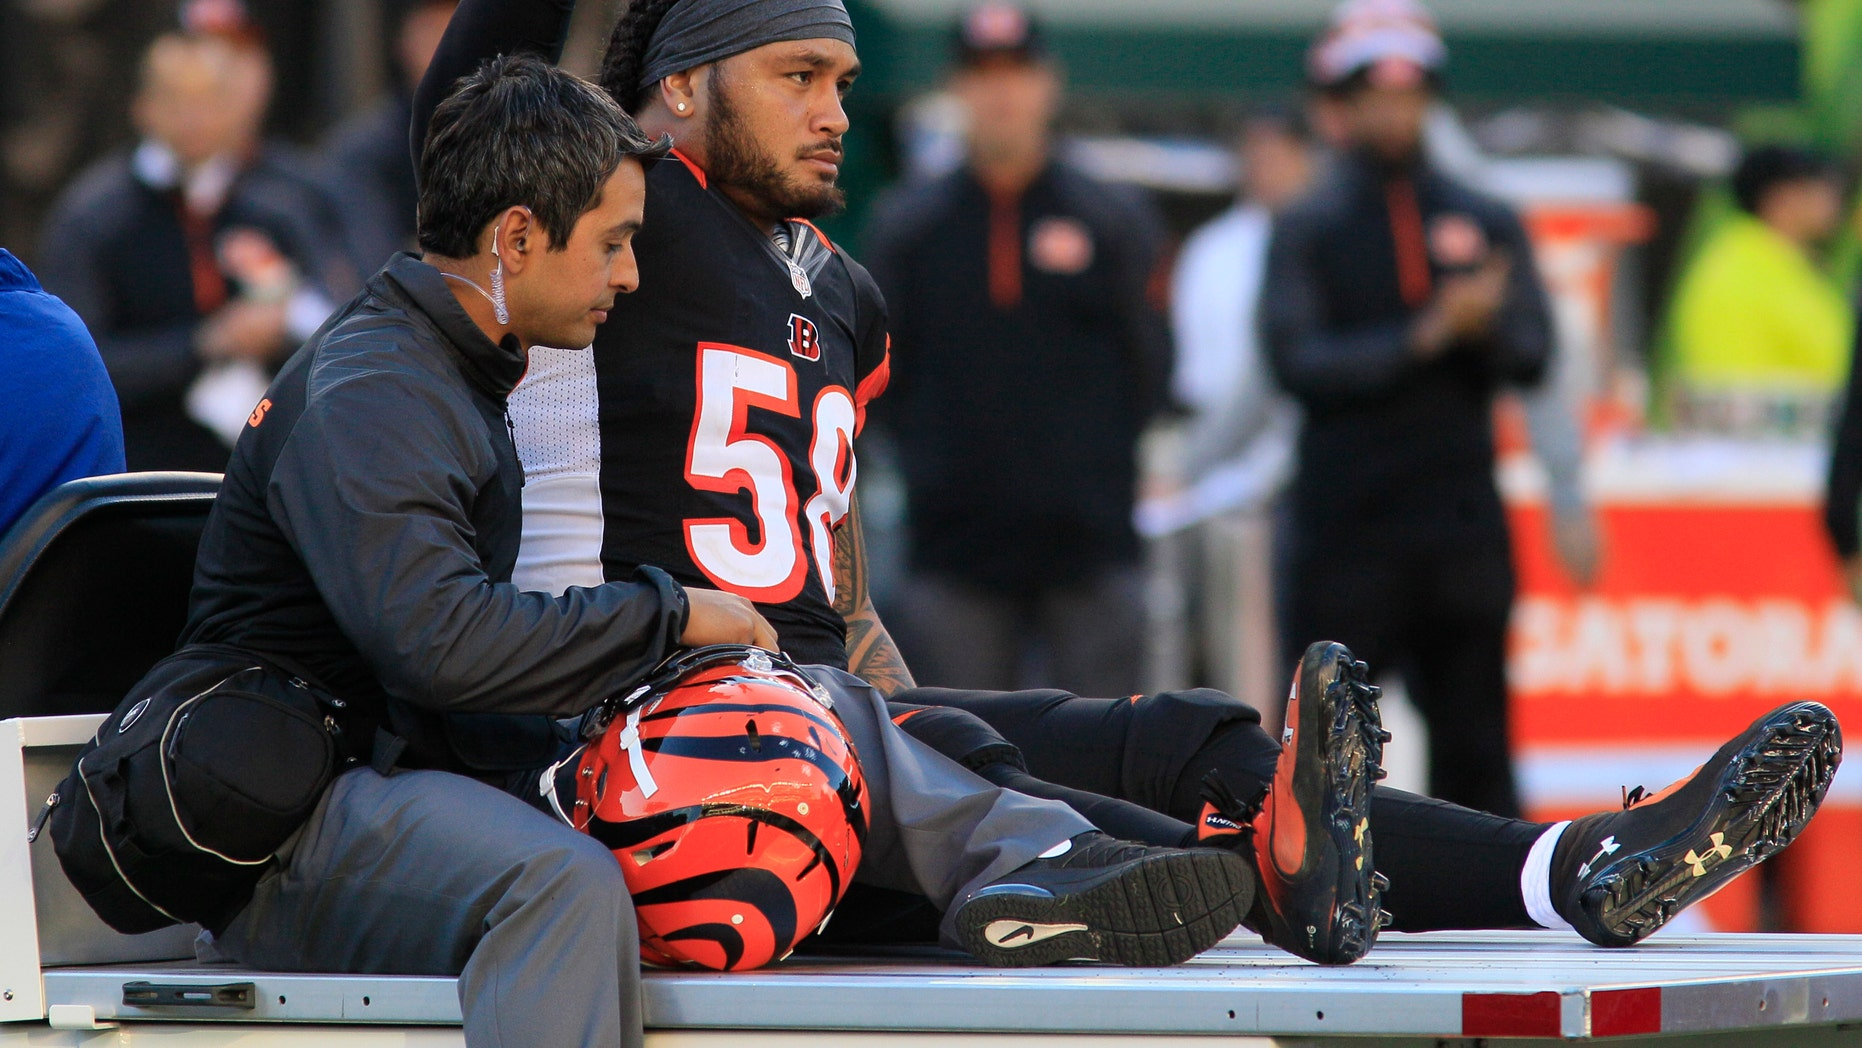 Cincinnati Bengals middle linebacker Rey Maualuga is taken off the field after being injured in the first half of an NFL football game against the New York Jets, Sunday, Oct. 27, 2013, in Cincinnati. (AP Photo/Tom Uhlman)